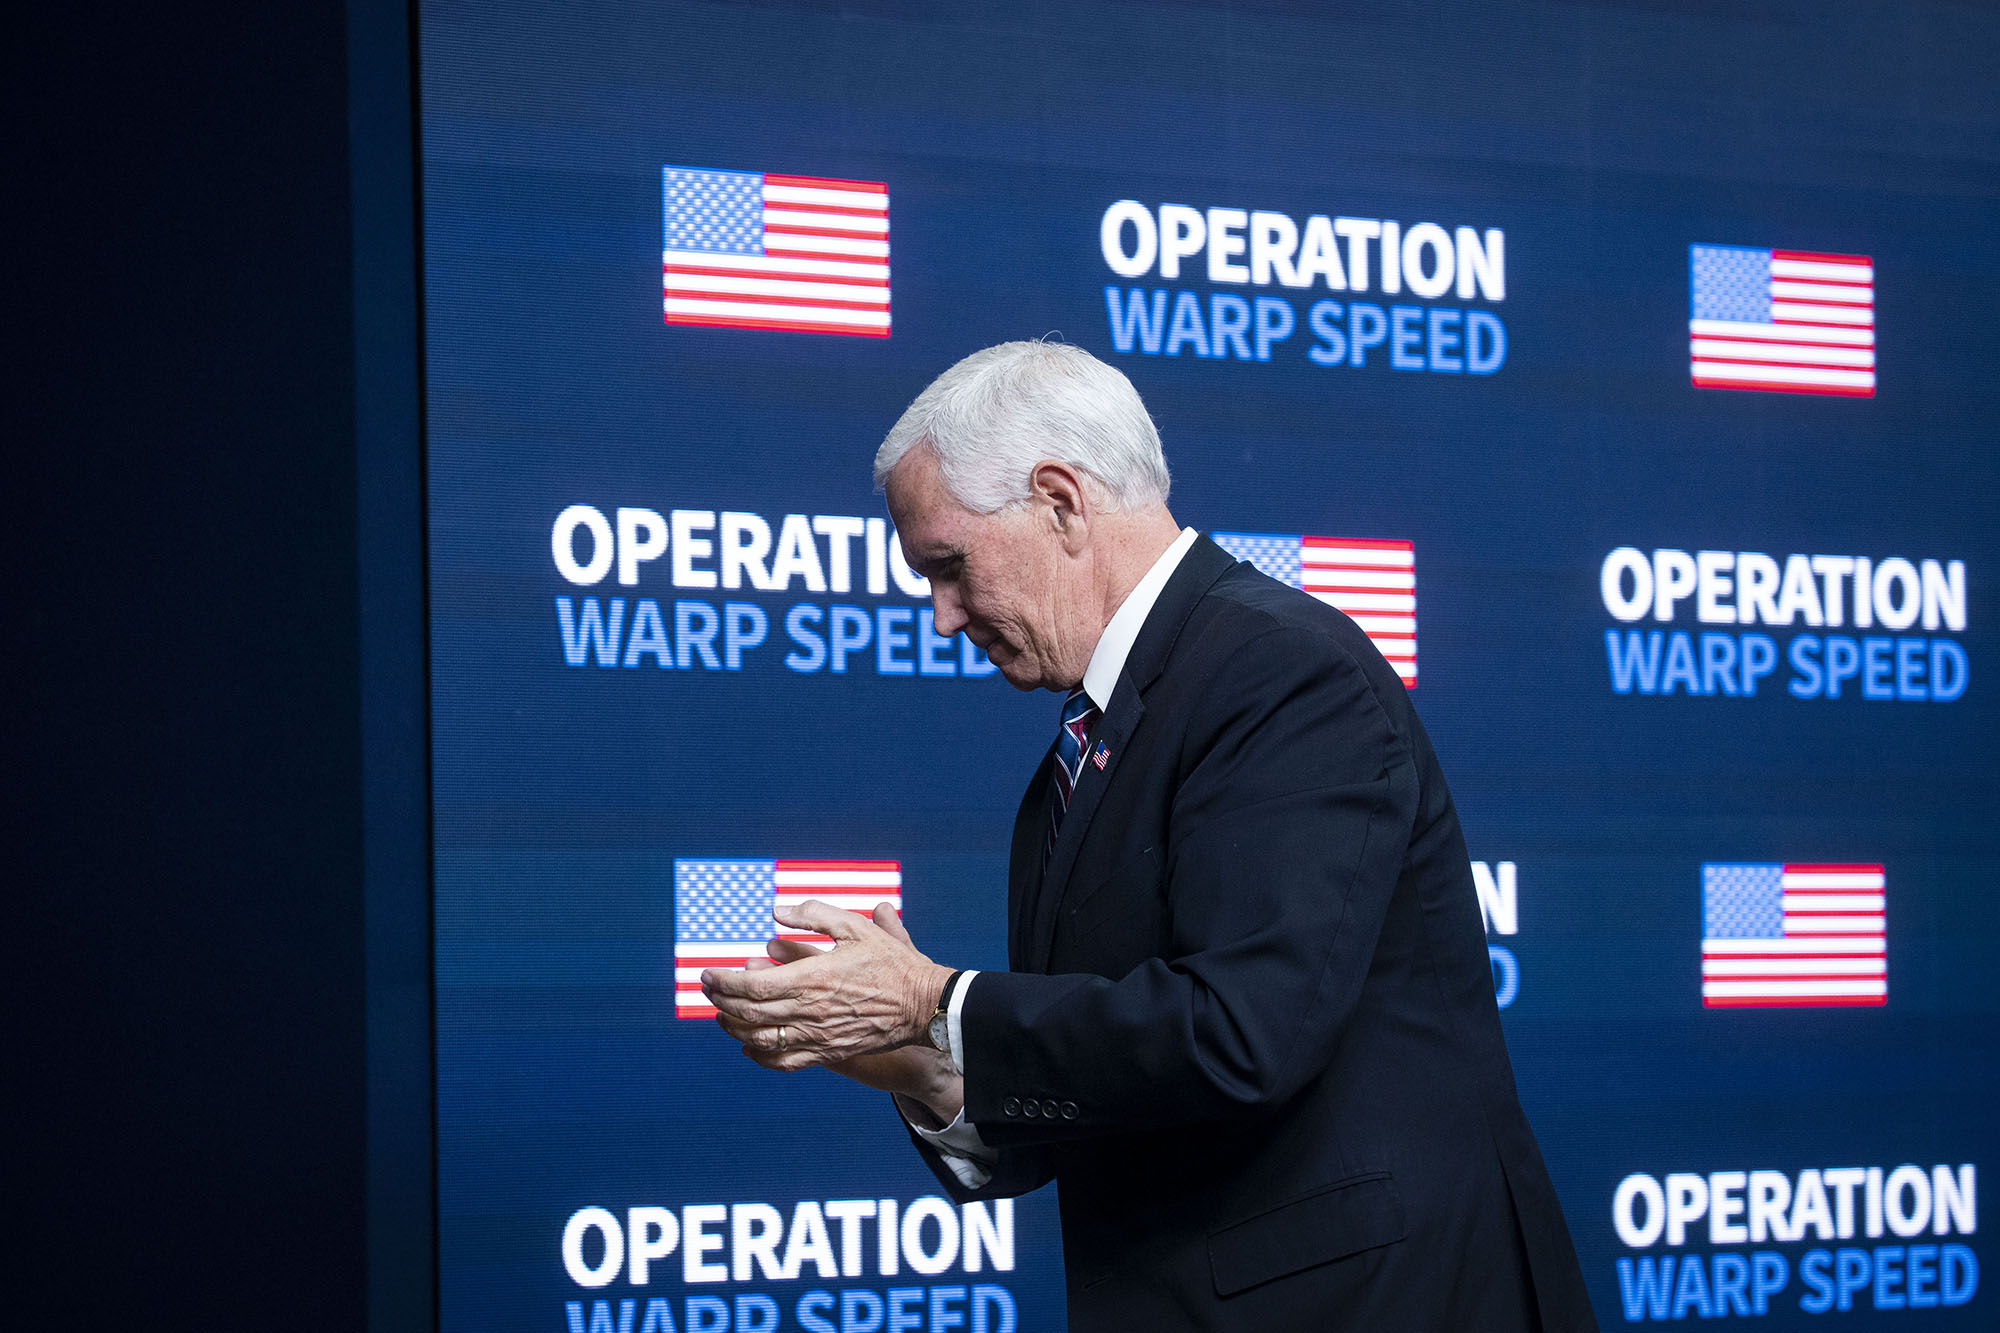 U.S. Vice President Mike Pence departs from an Operation Warp Speed vaccine summit at the White House in Washington DC, on Tuesday, December 8.